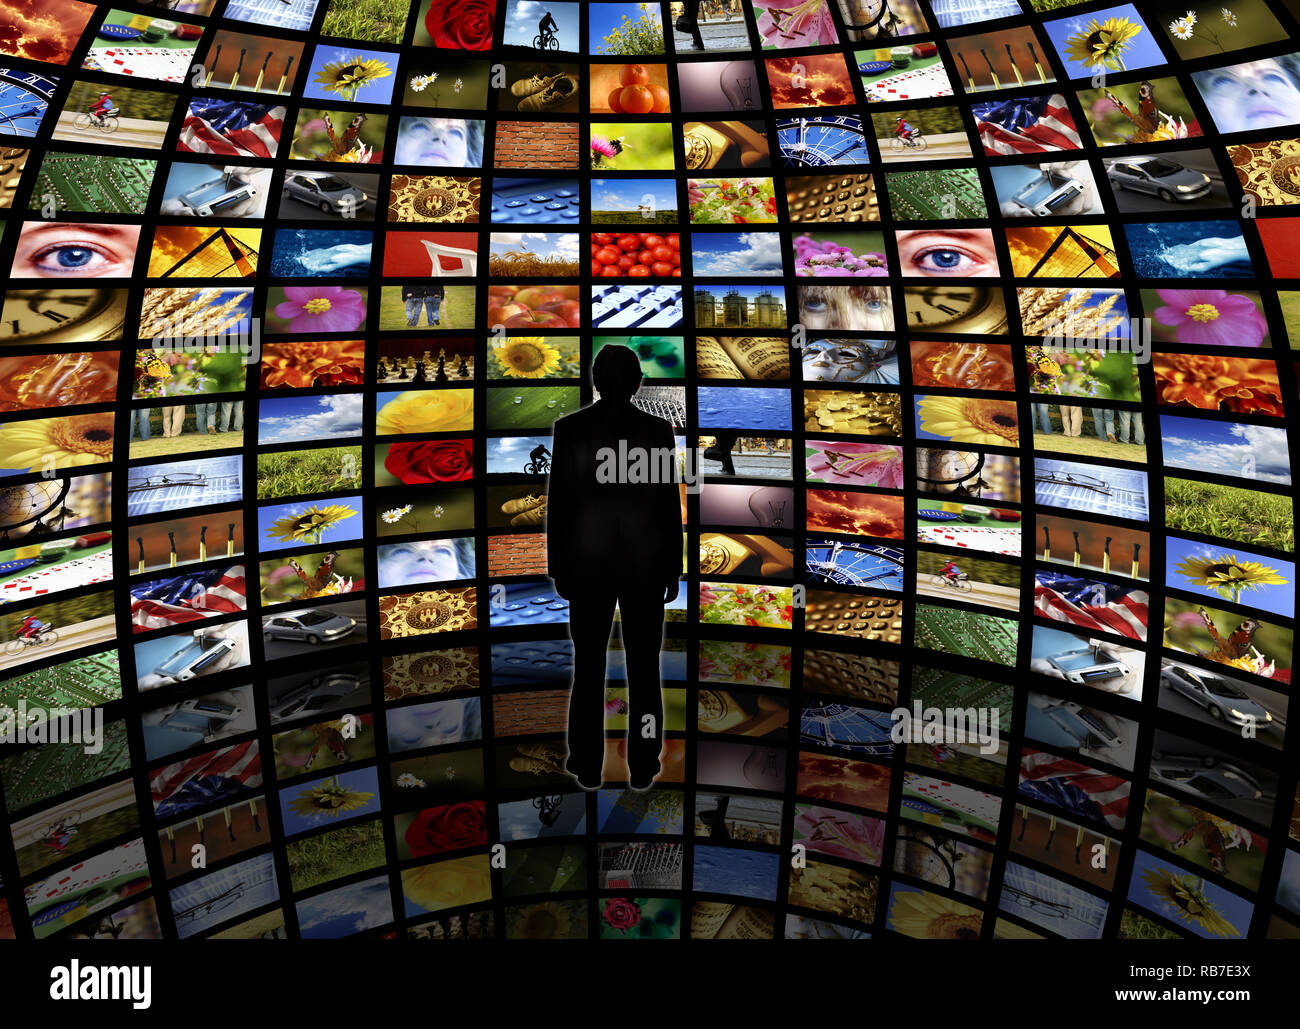 spherical room with a wall of television screens and a man standing on a reflective floor looking at it - Stock Image